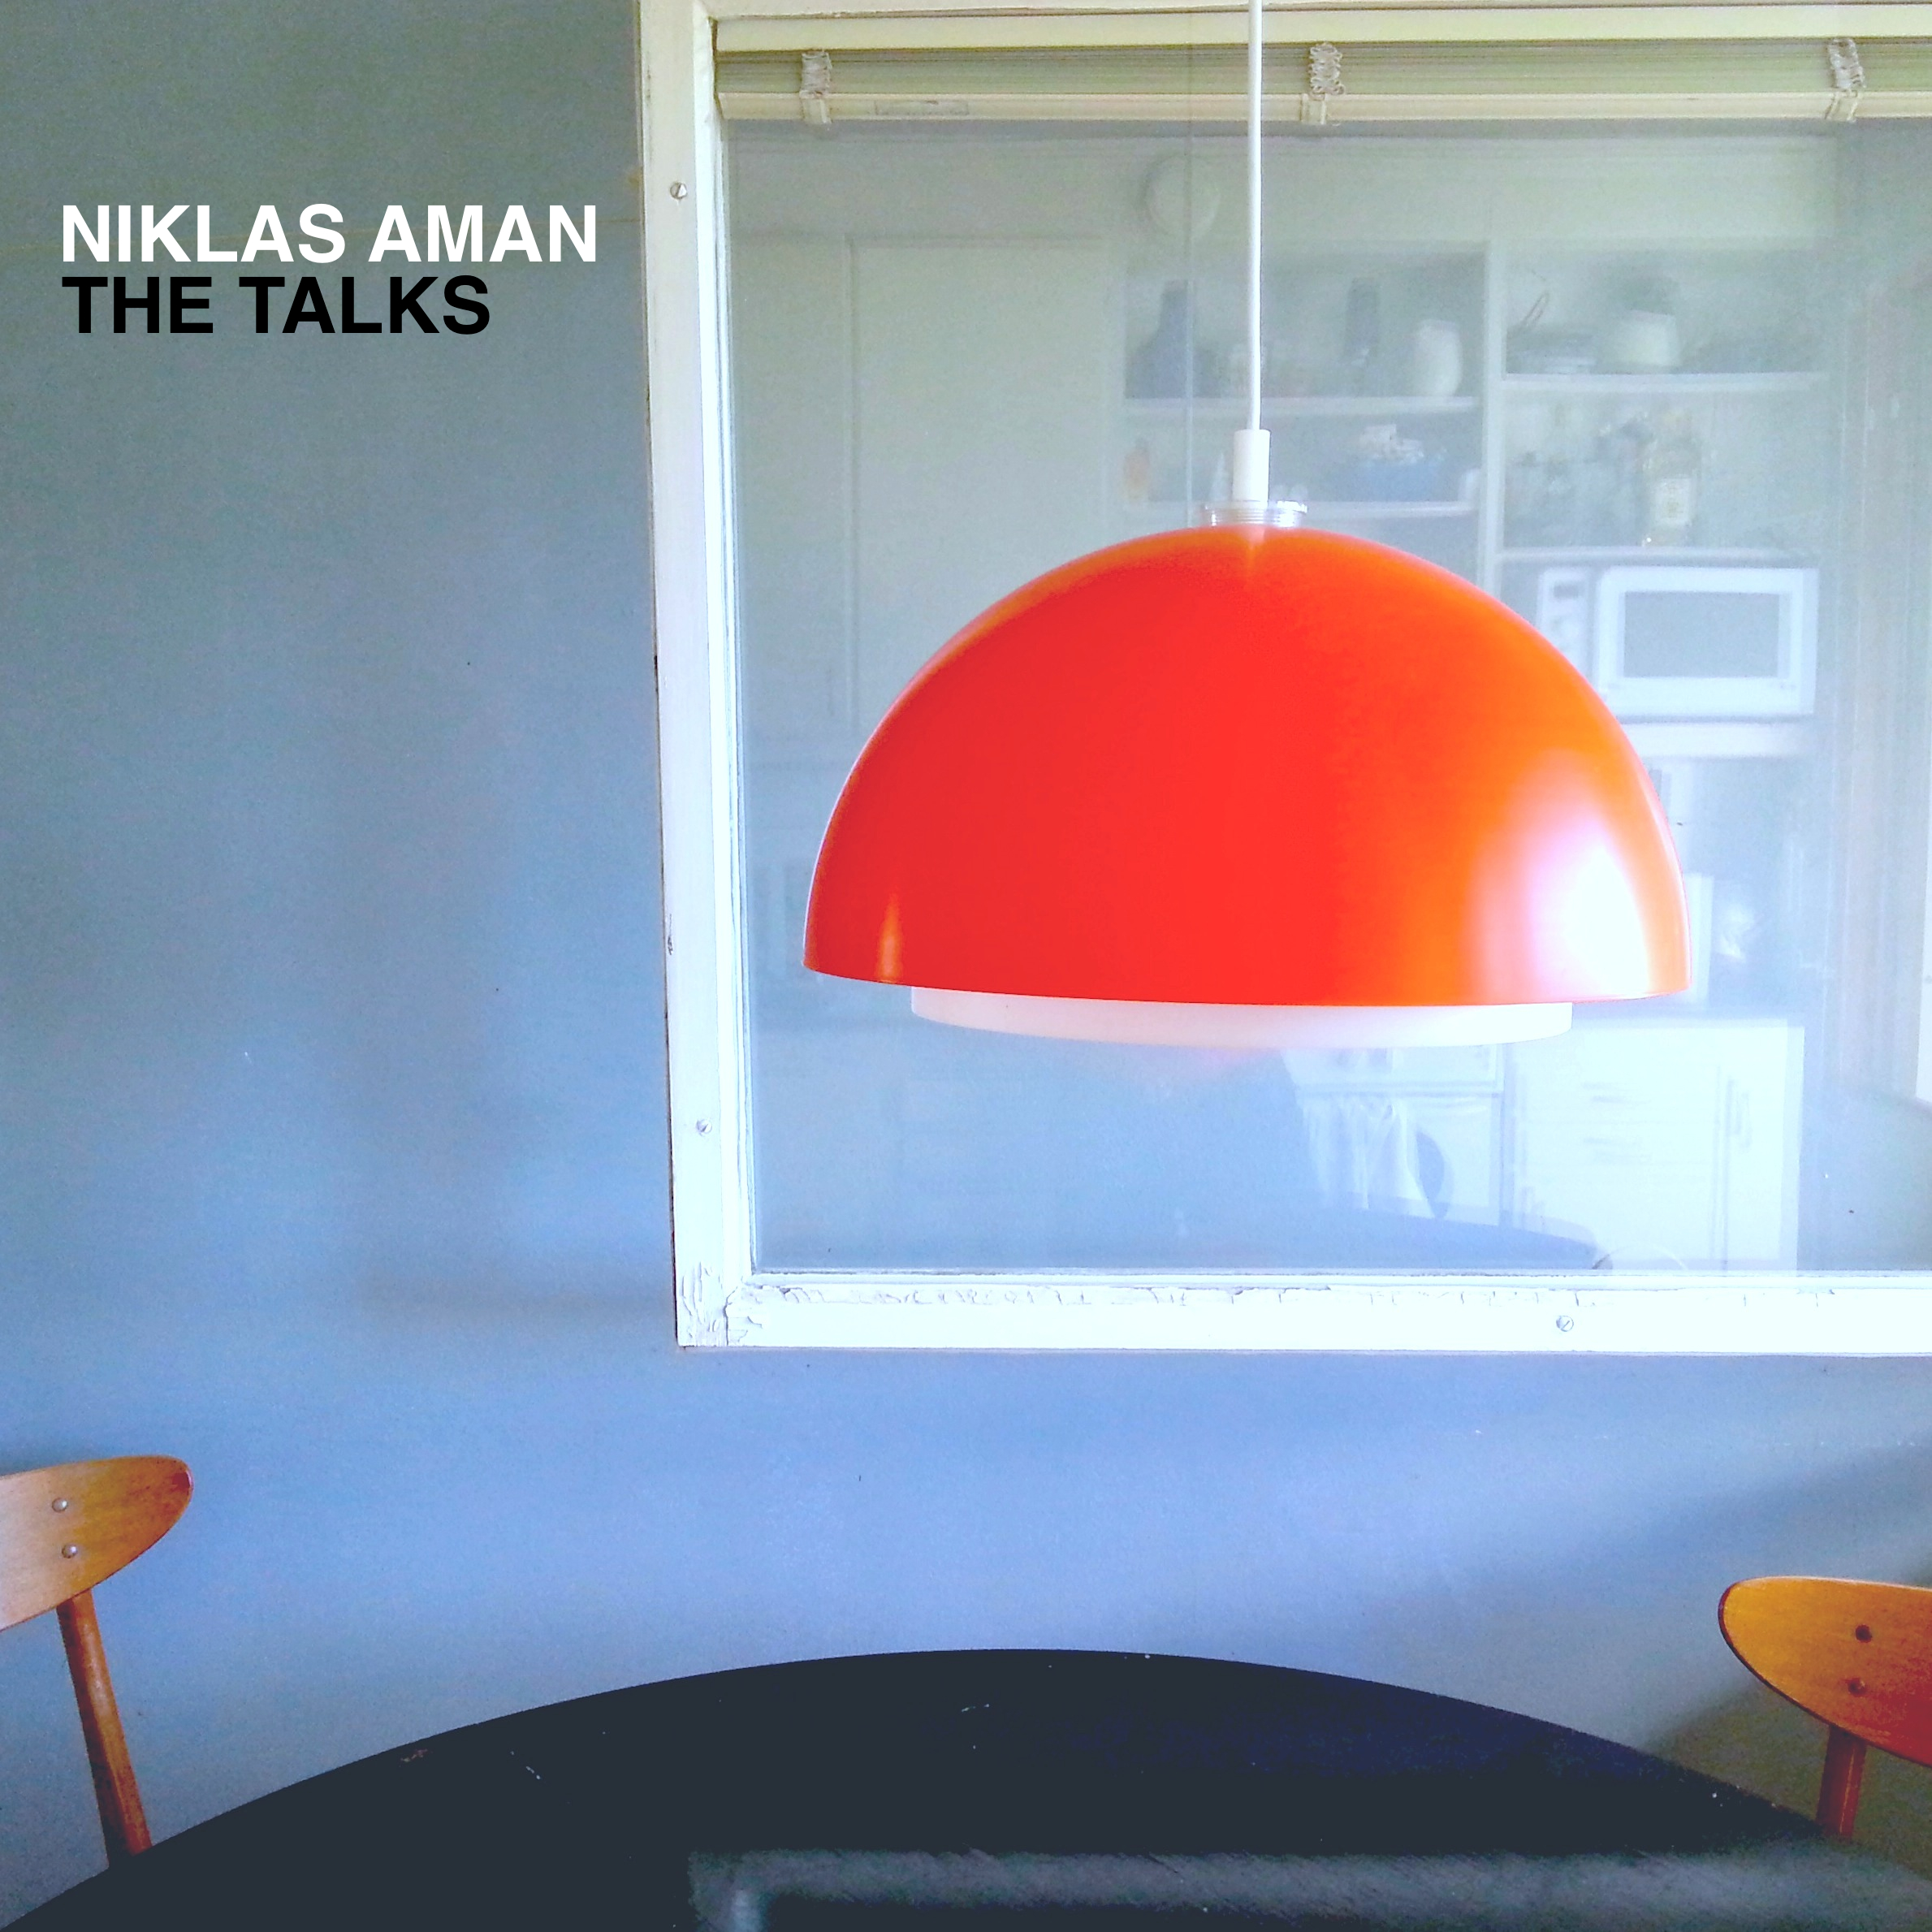 The Talks album cover